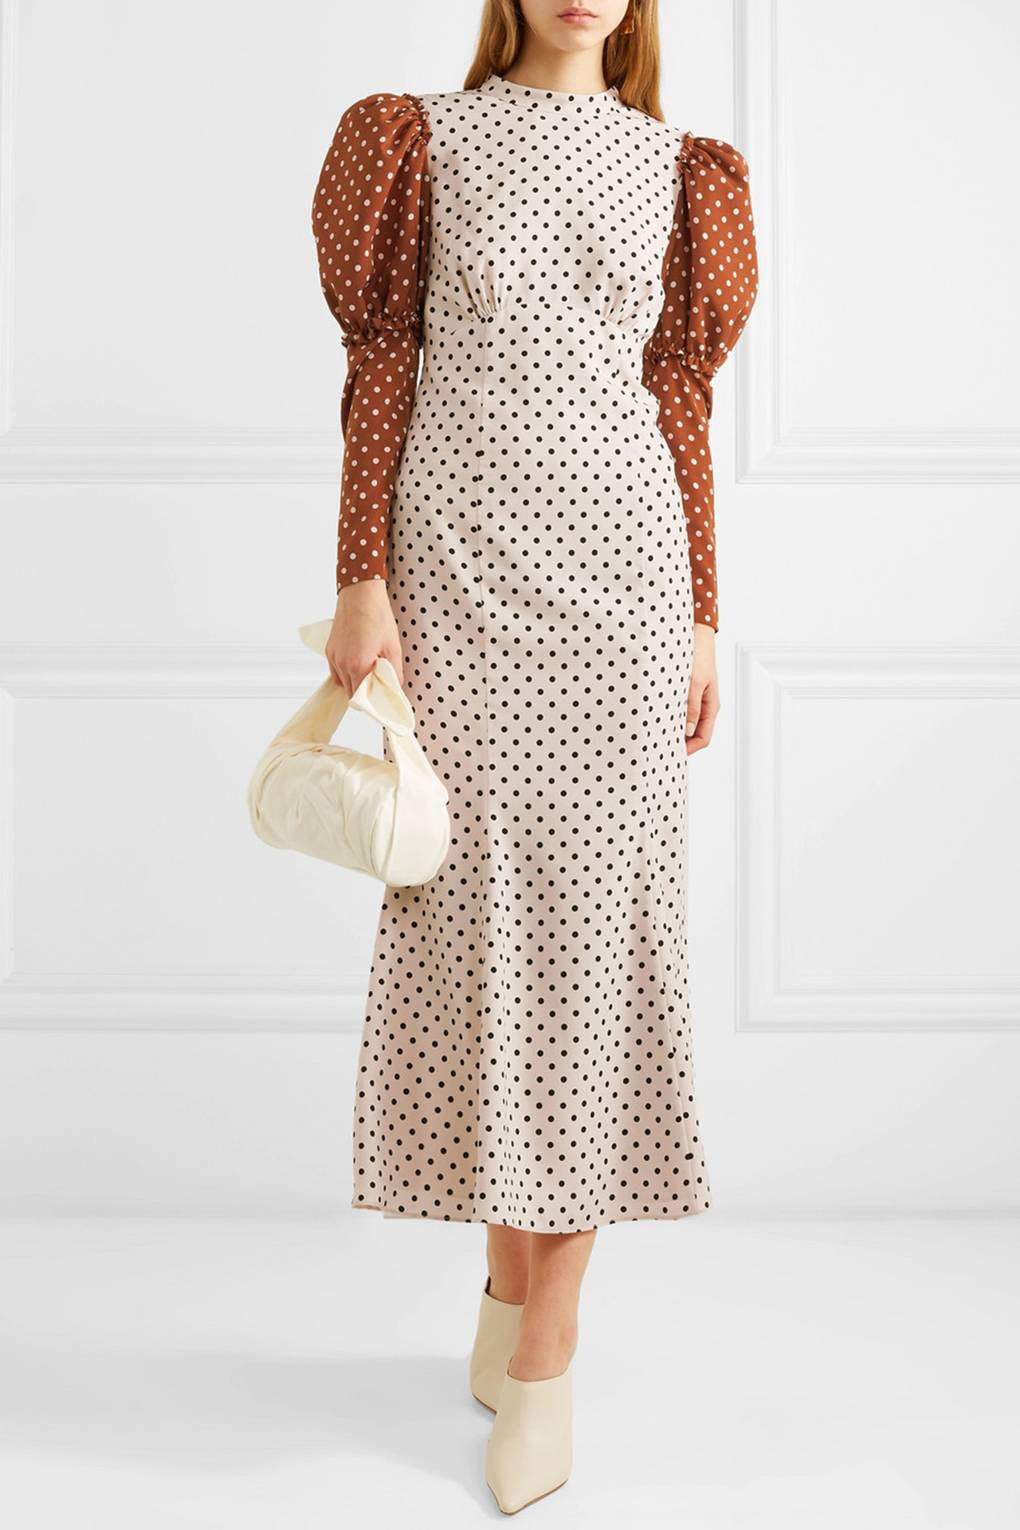 c8f23eb90acc Chic Spring Wedding Guest Dresses - What To Wear To A Wedding In 2019